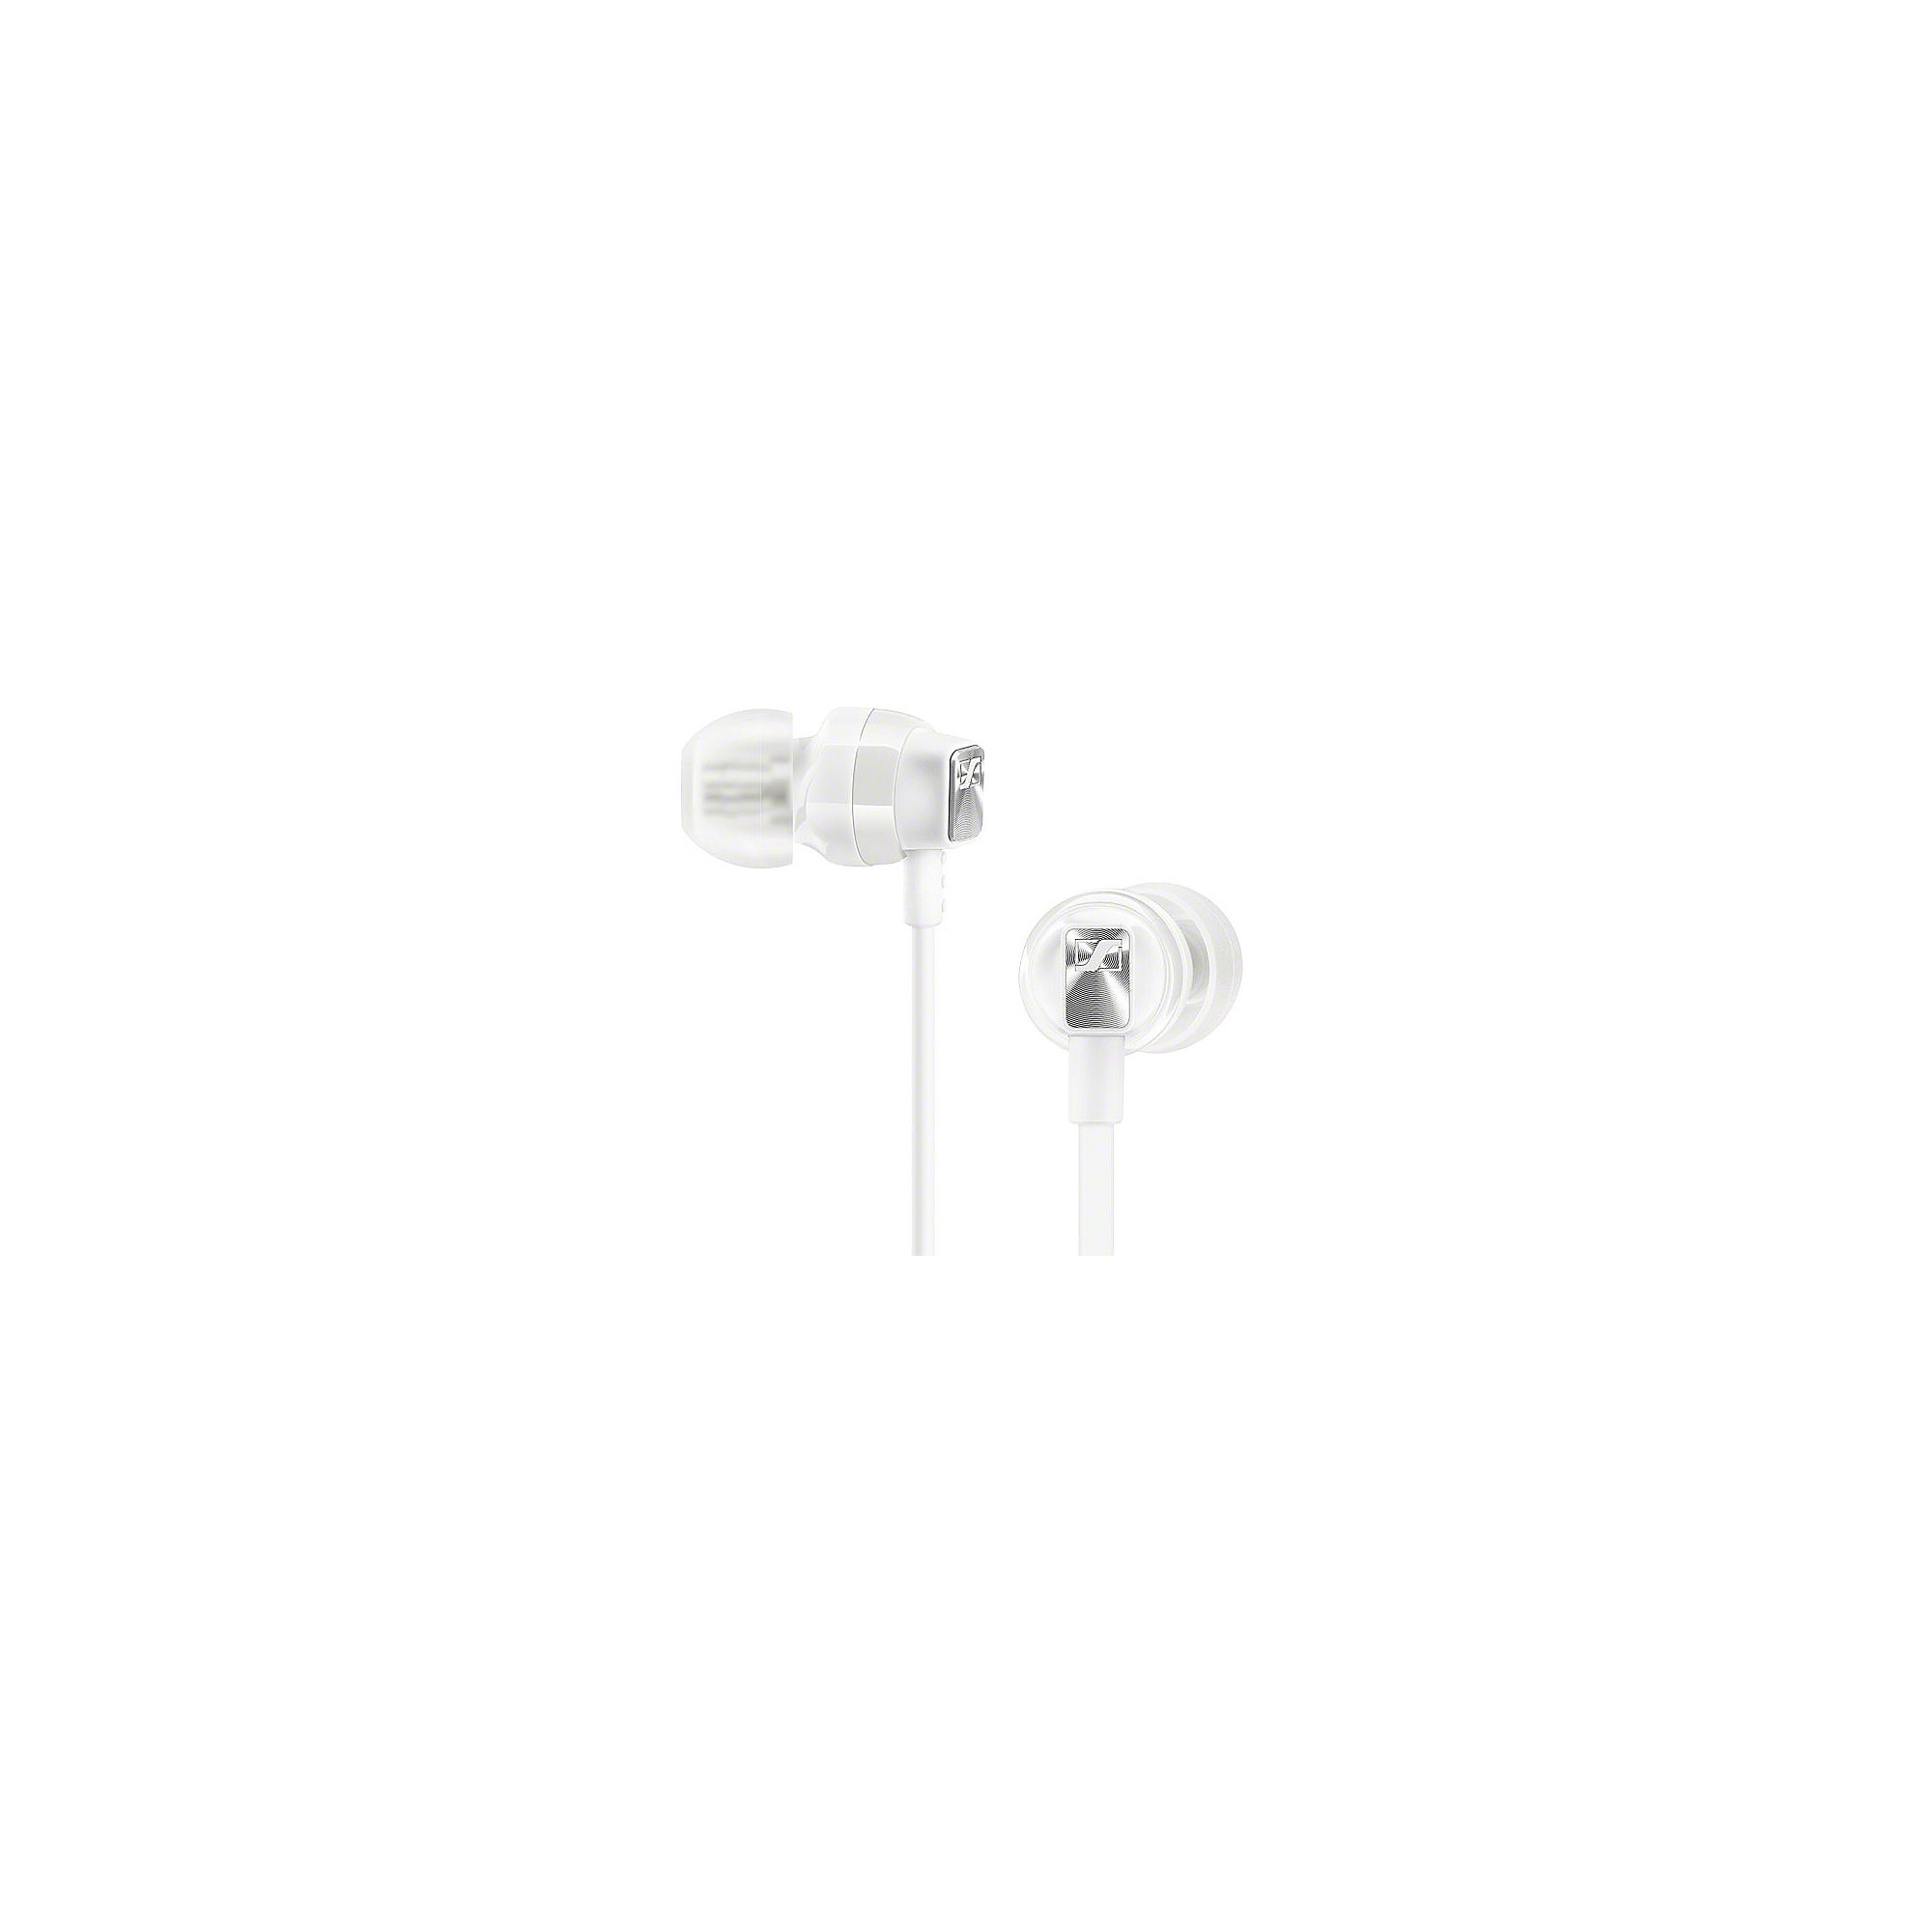 Sennheiser CX 3.00 White Ohrkanalhörer/ In-Ear